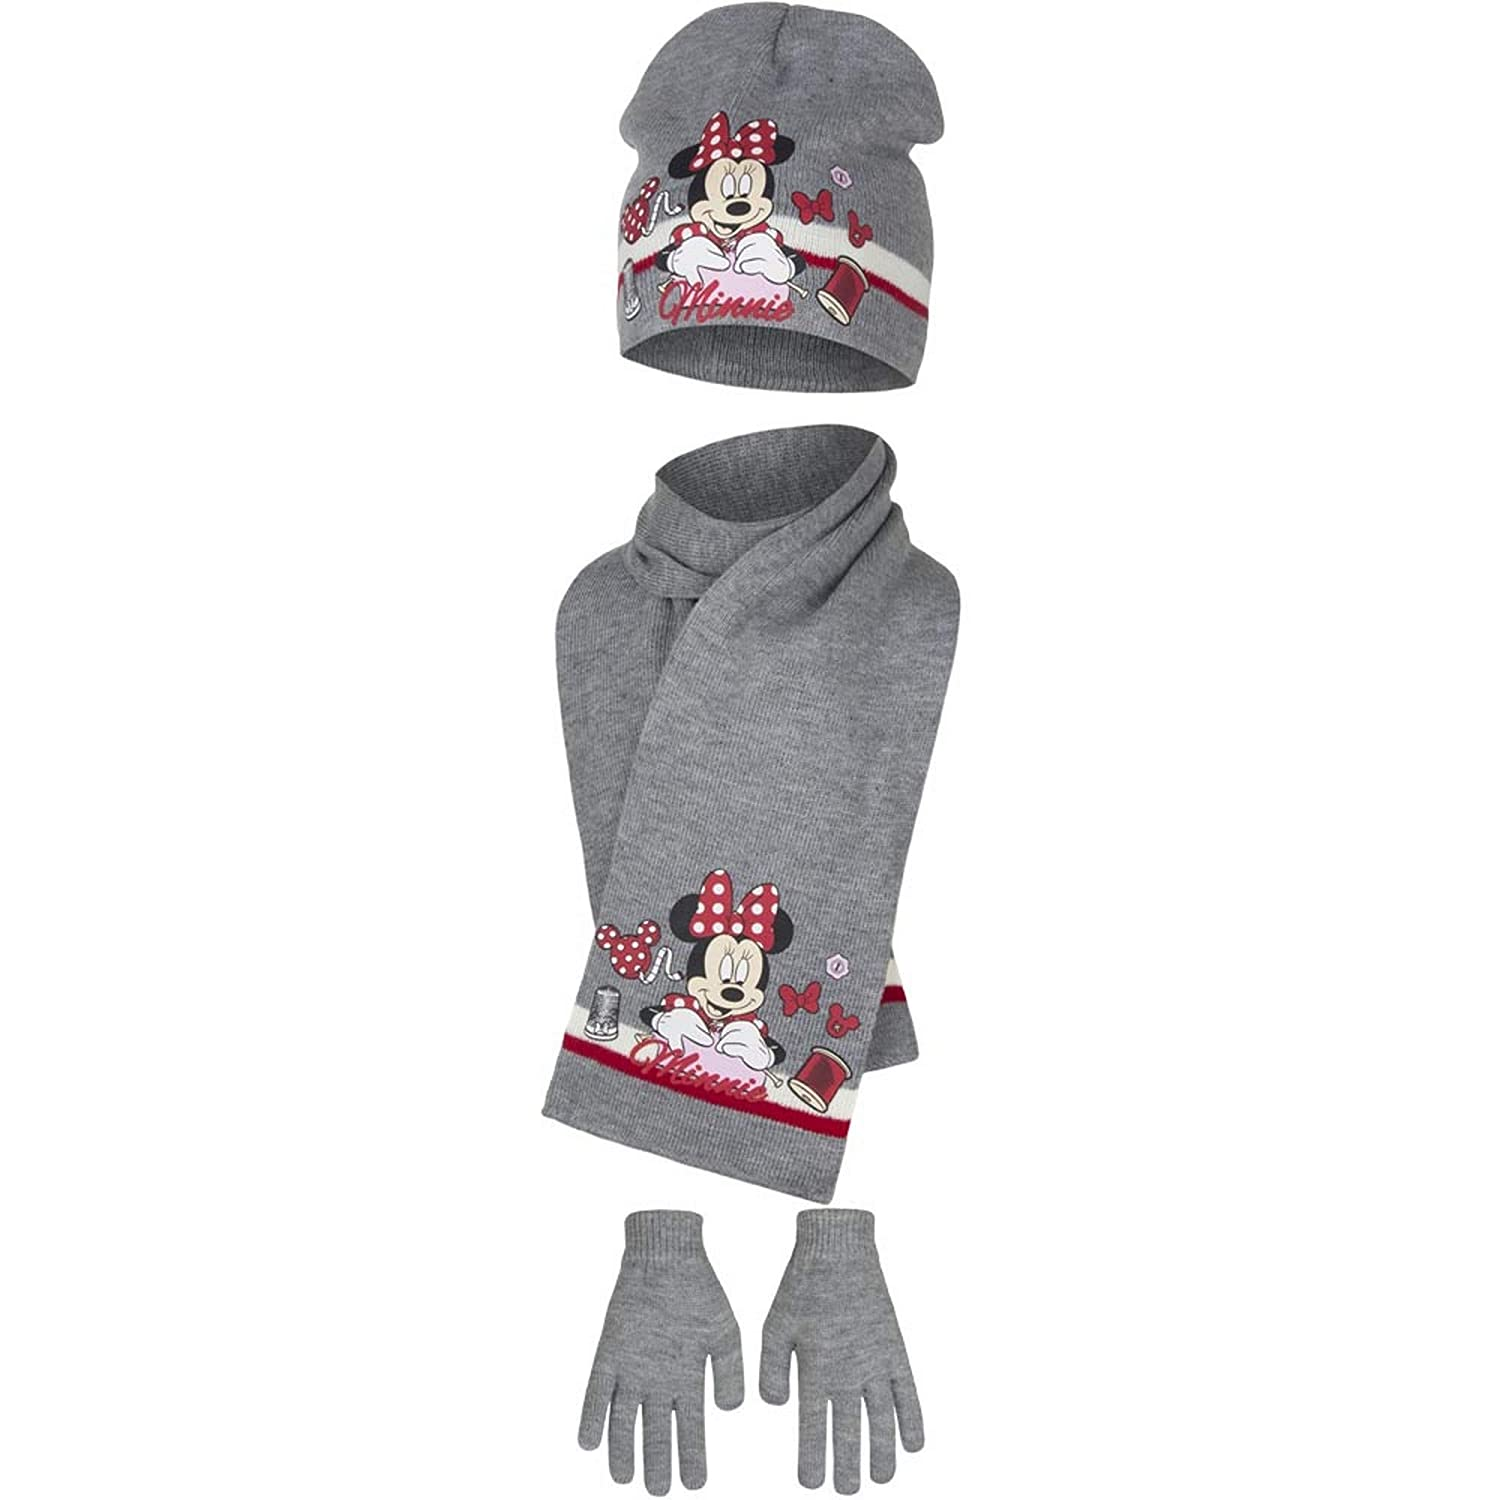 Disney Minnie Mouse Childrens Girls Sewing Winter Hat, Scarf and Gloves Set